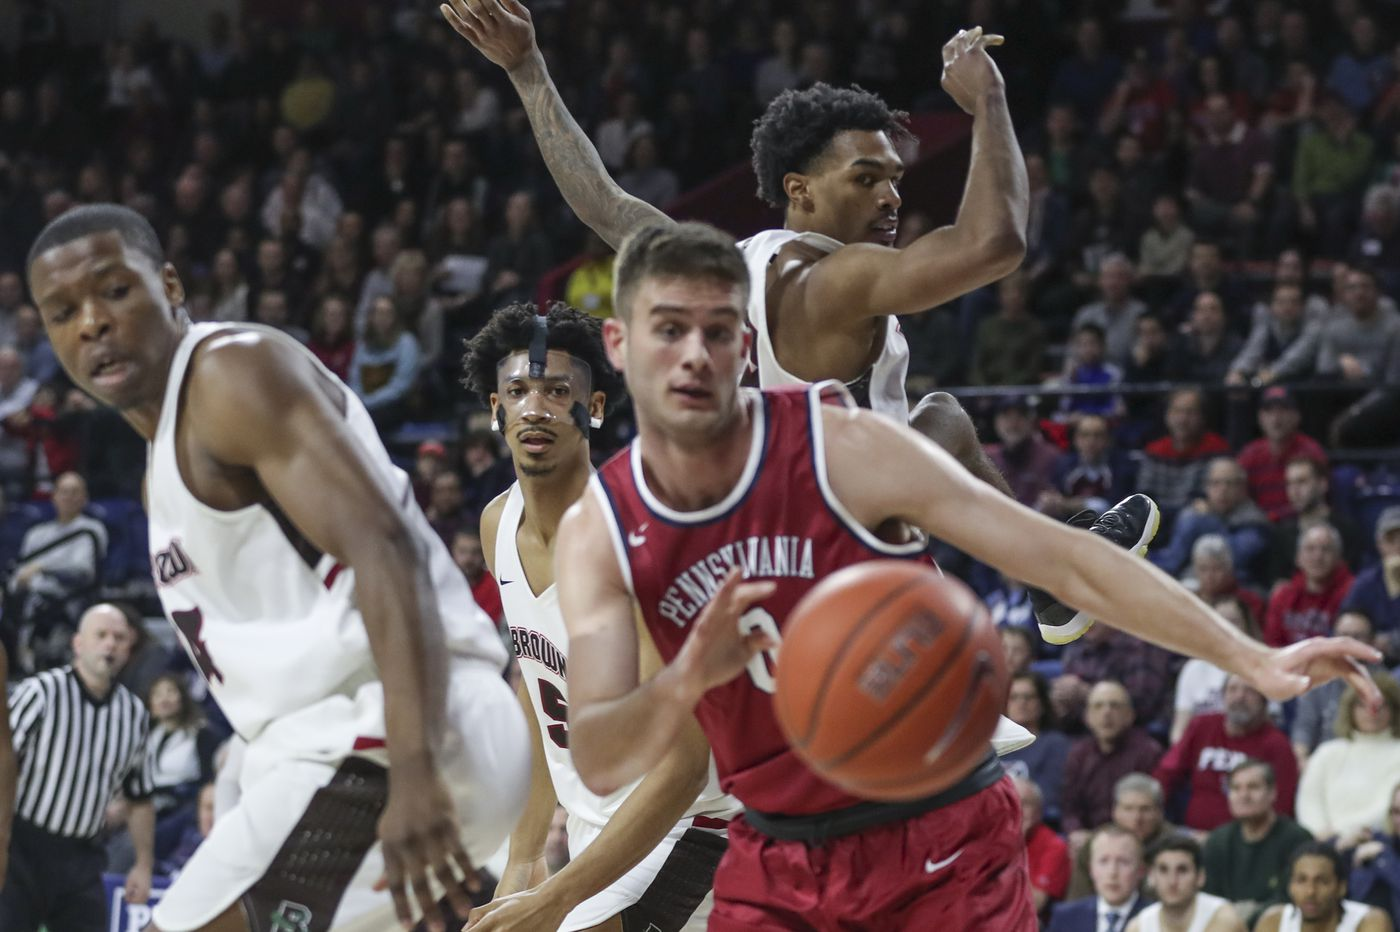 Penn basketball now has to replace a special senior class | Mike Jensen